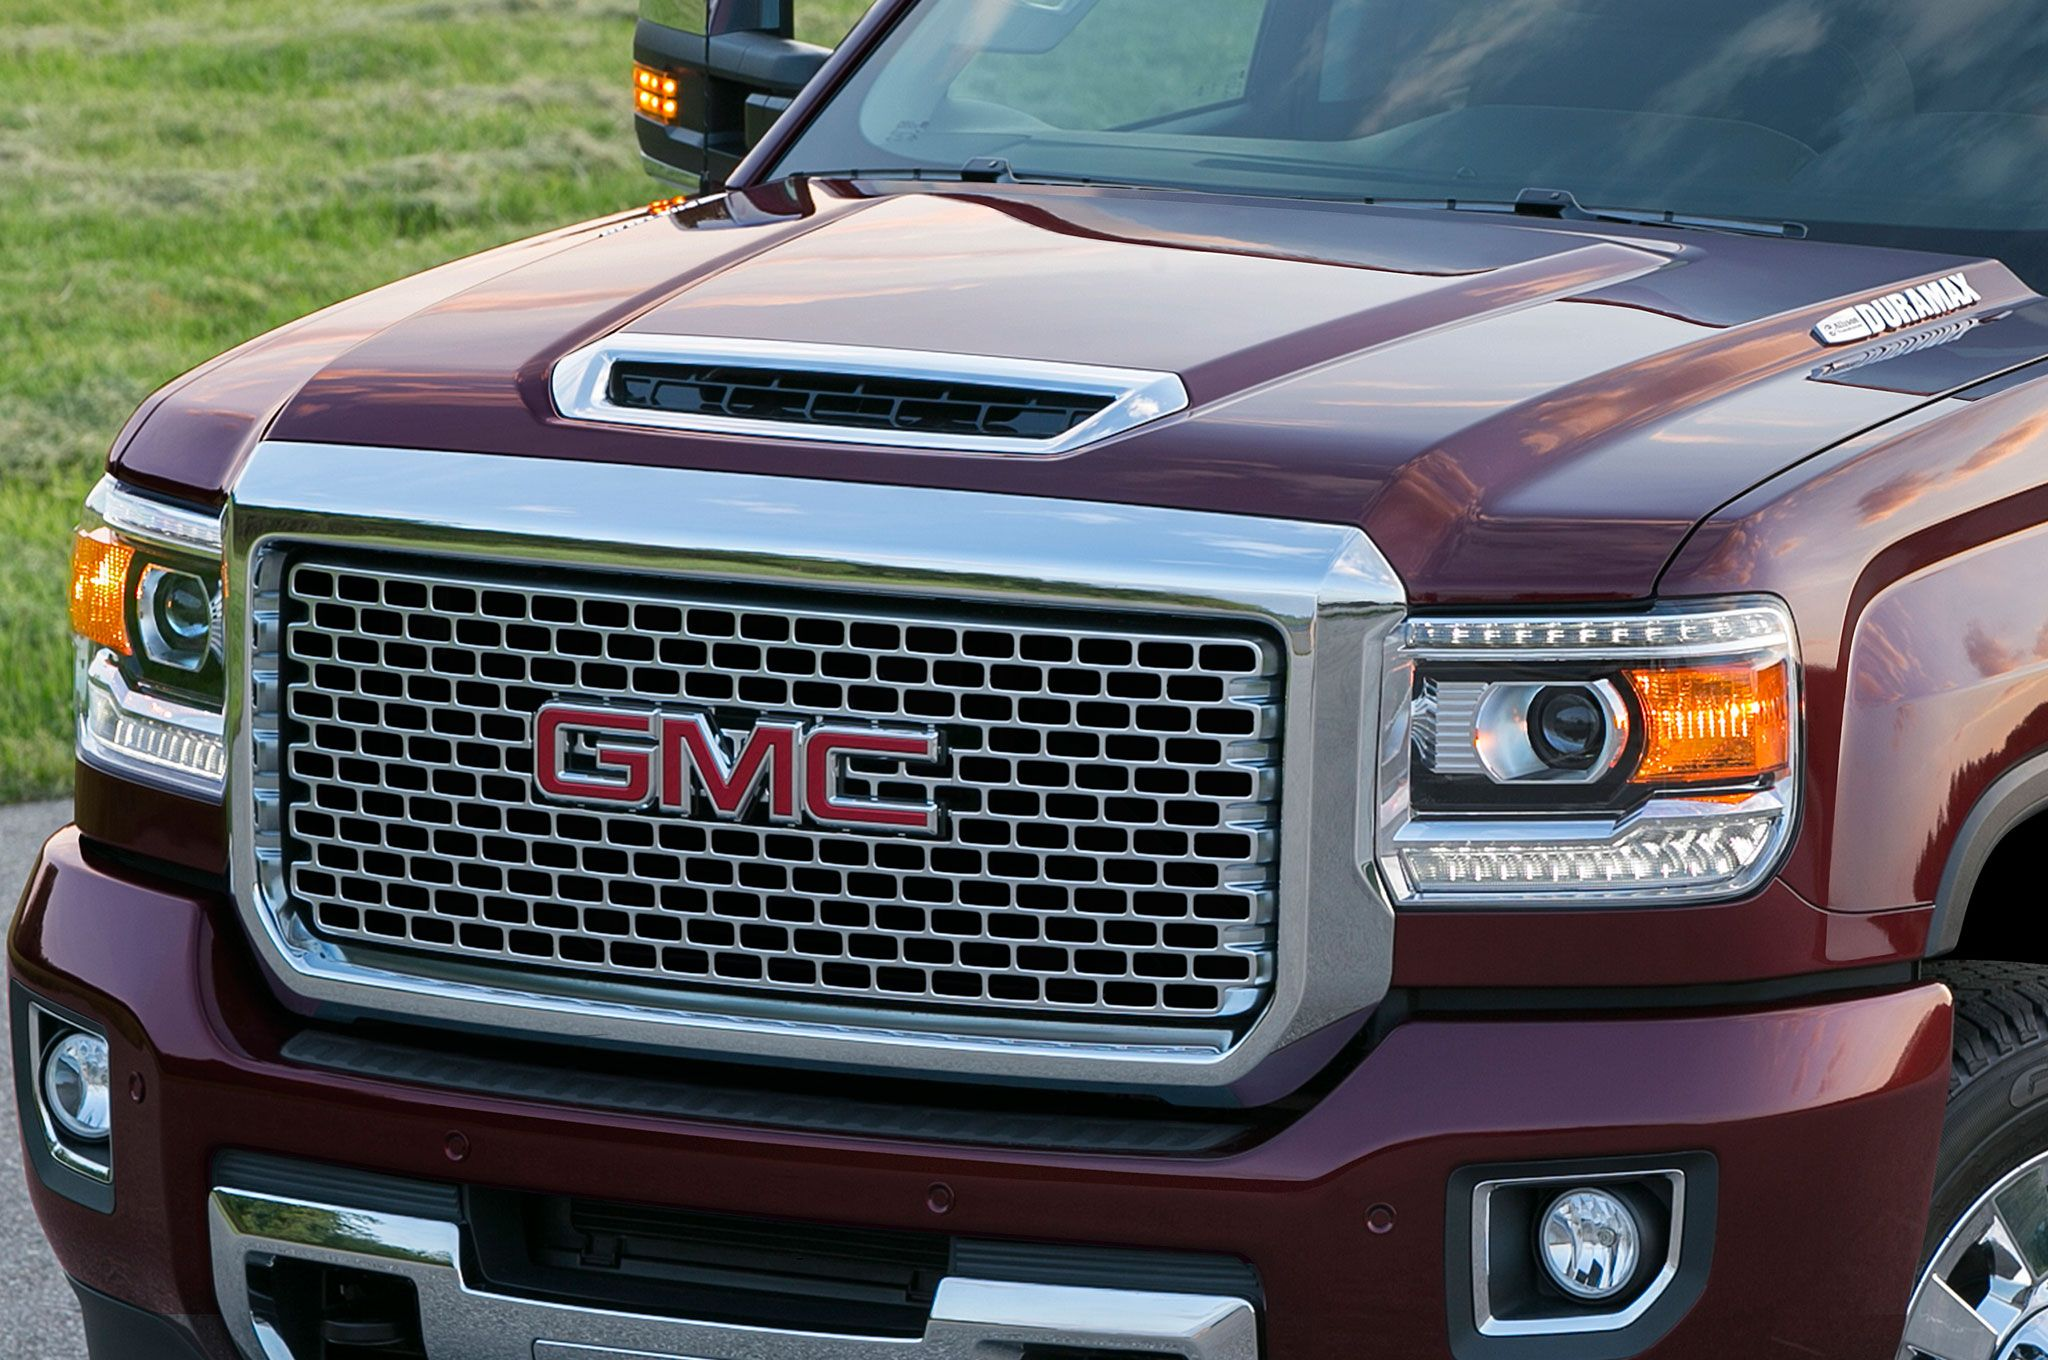 2016 Duramax Specs >> Gm Scoops Itself With L5p Duramax Output 445 Hp 910 Lb Ft